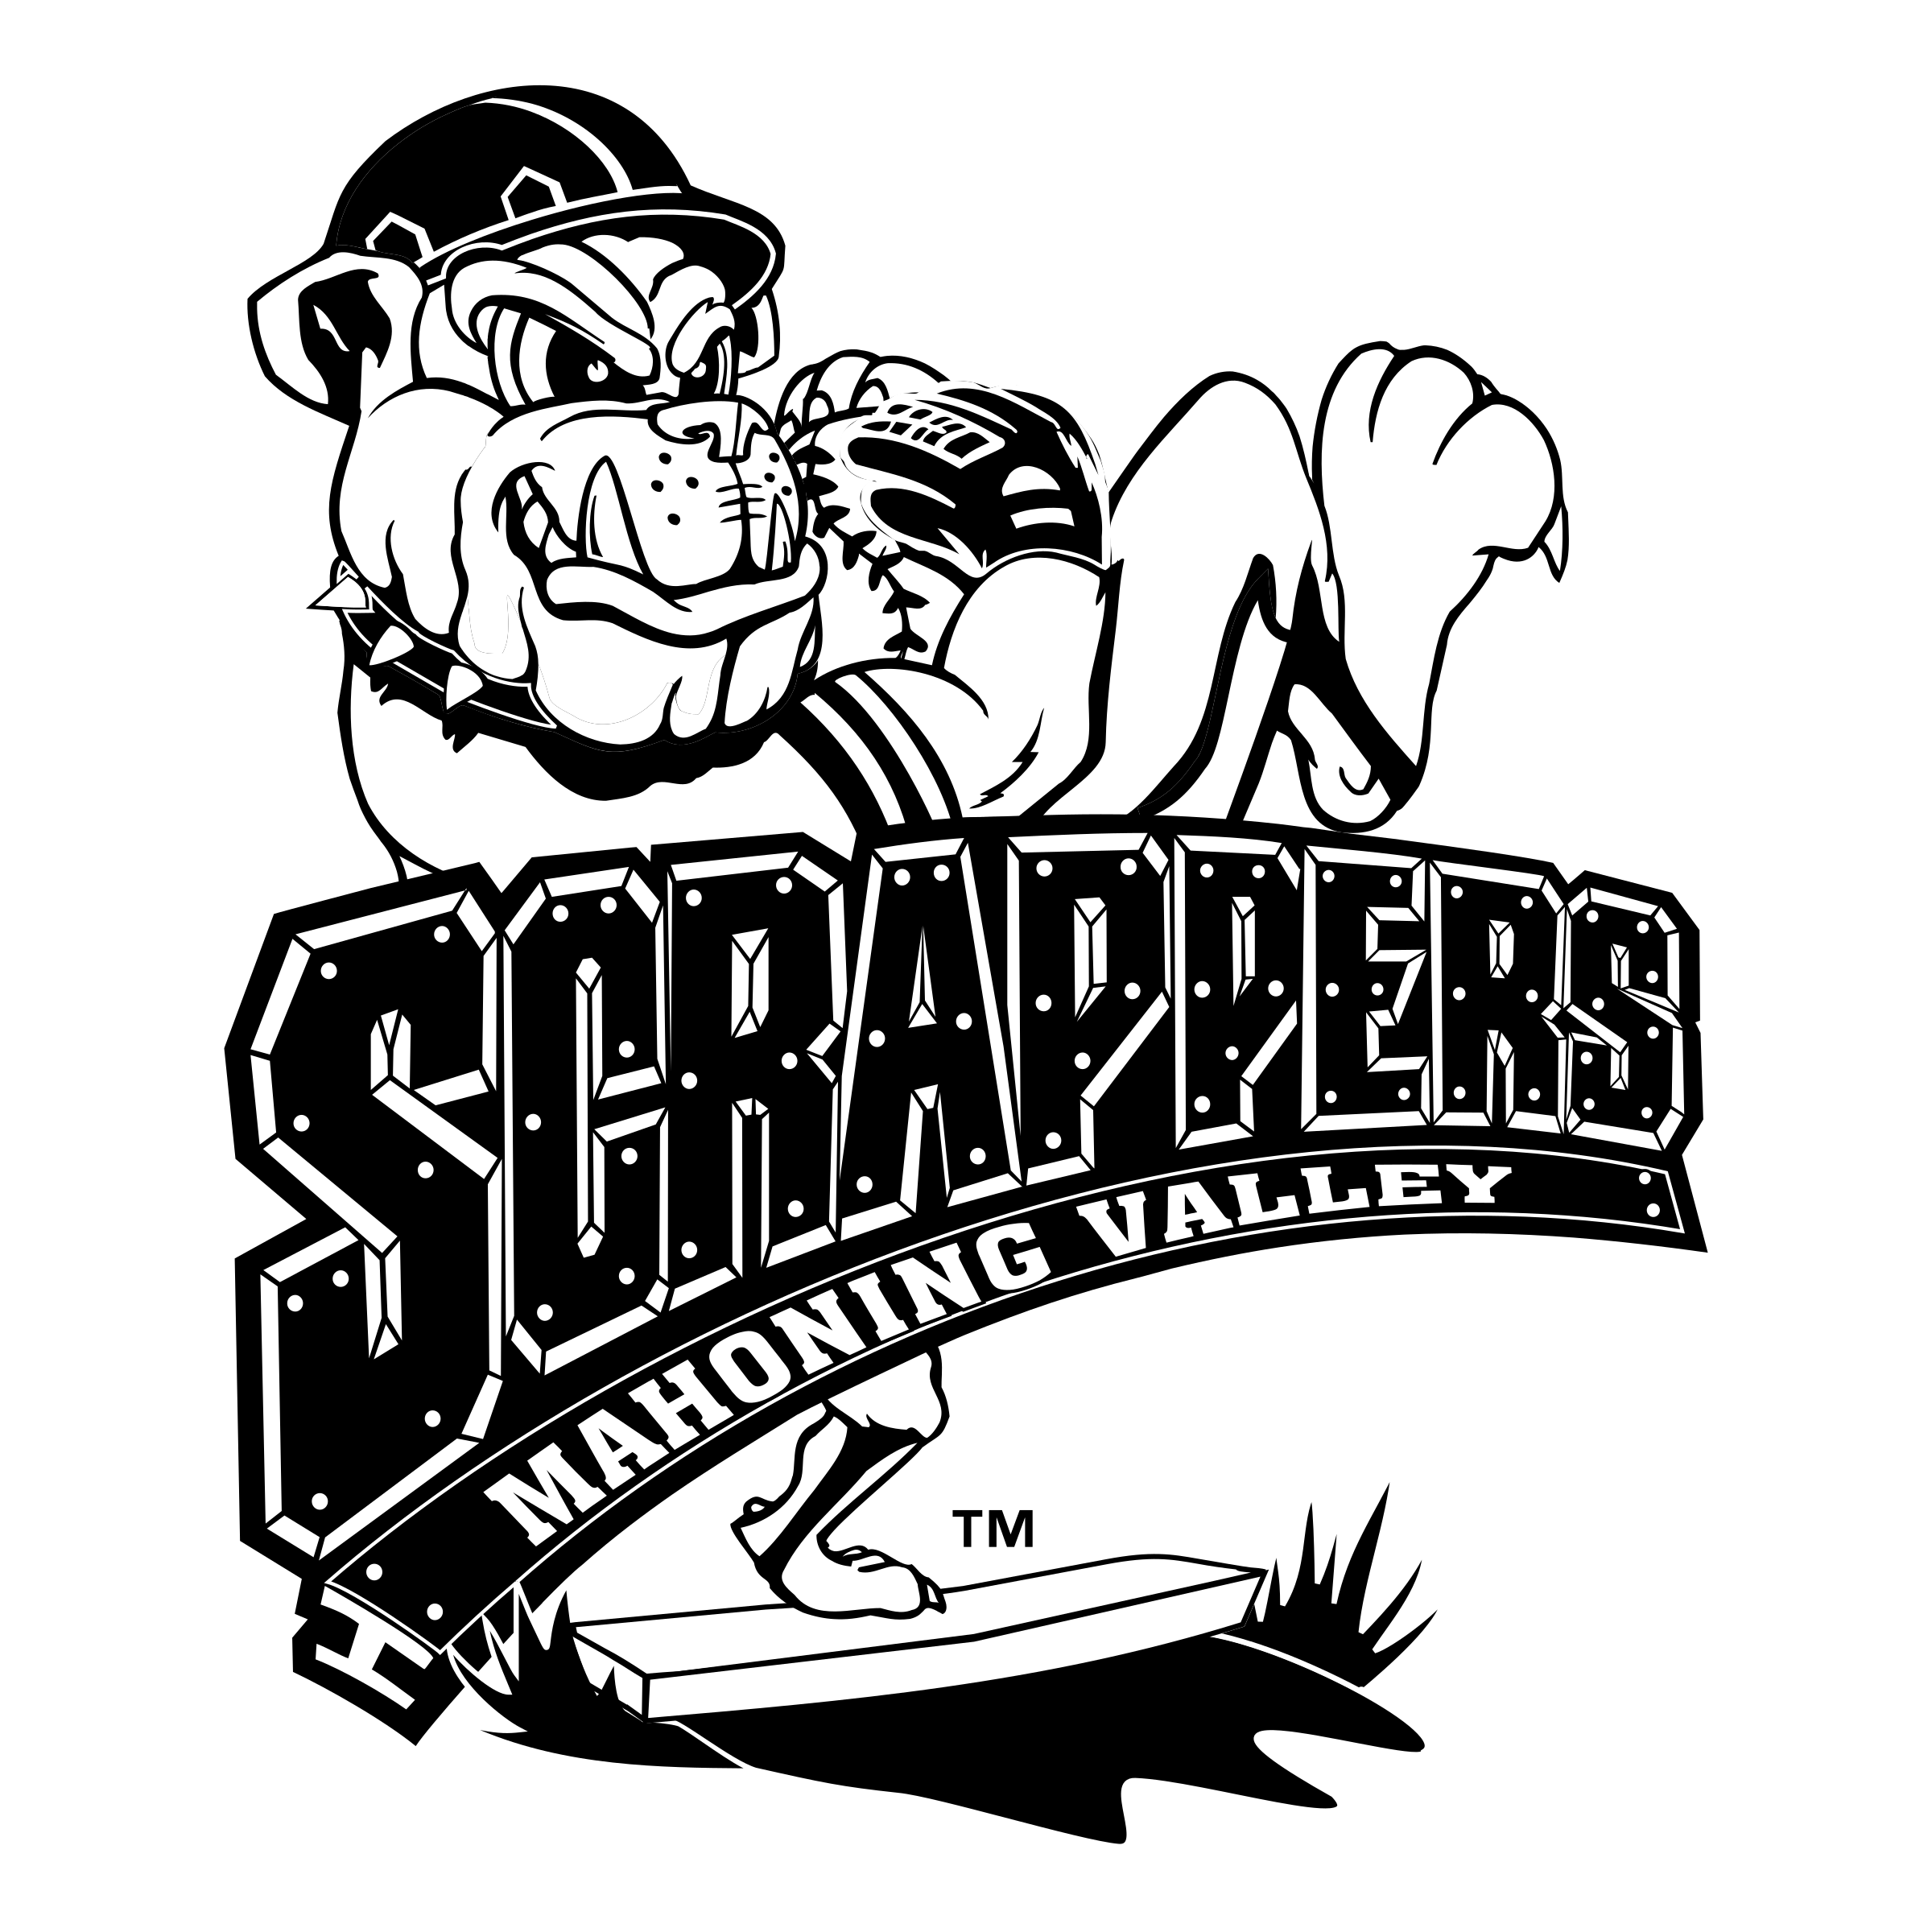 Valley vector black and white. Mahoning scrappers logo png